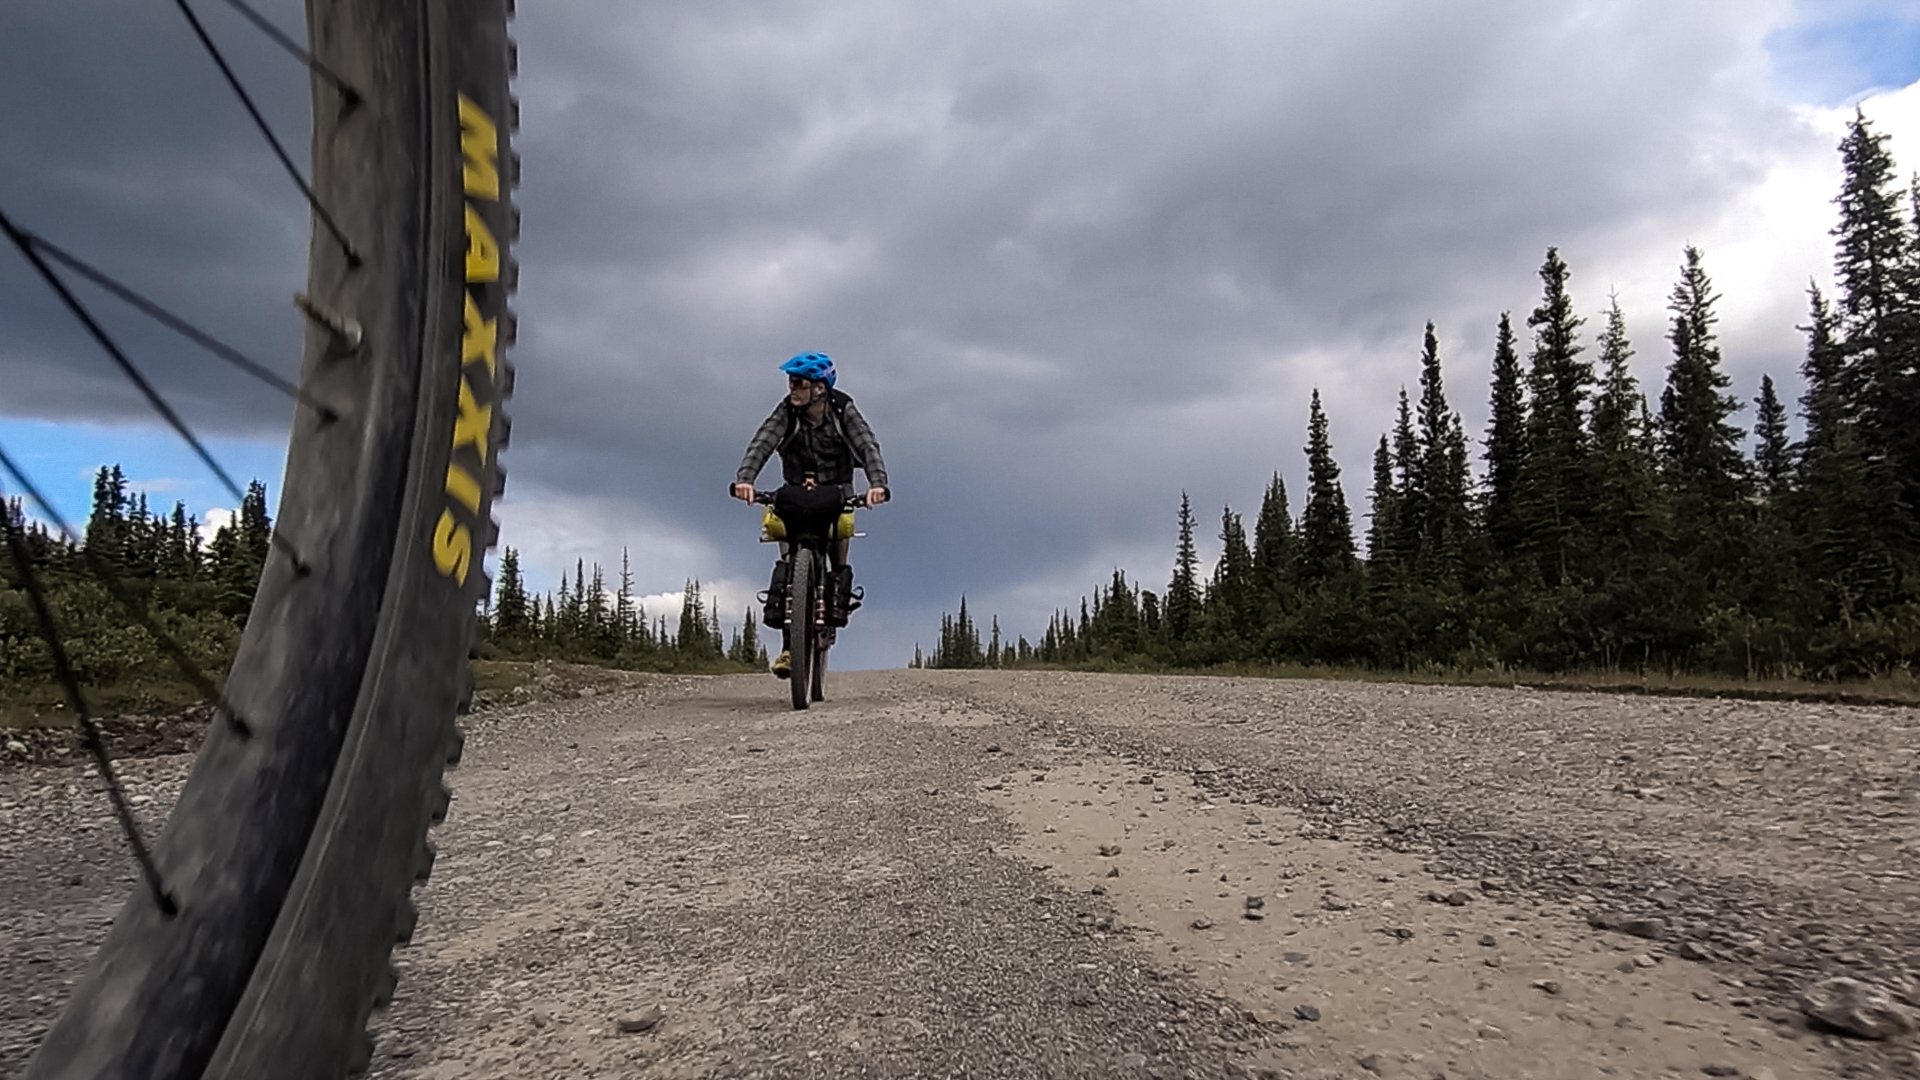 Bikepacking Alaska | The view from here